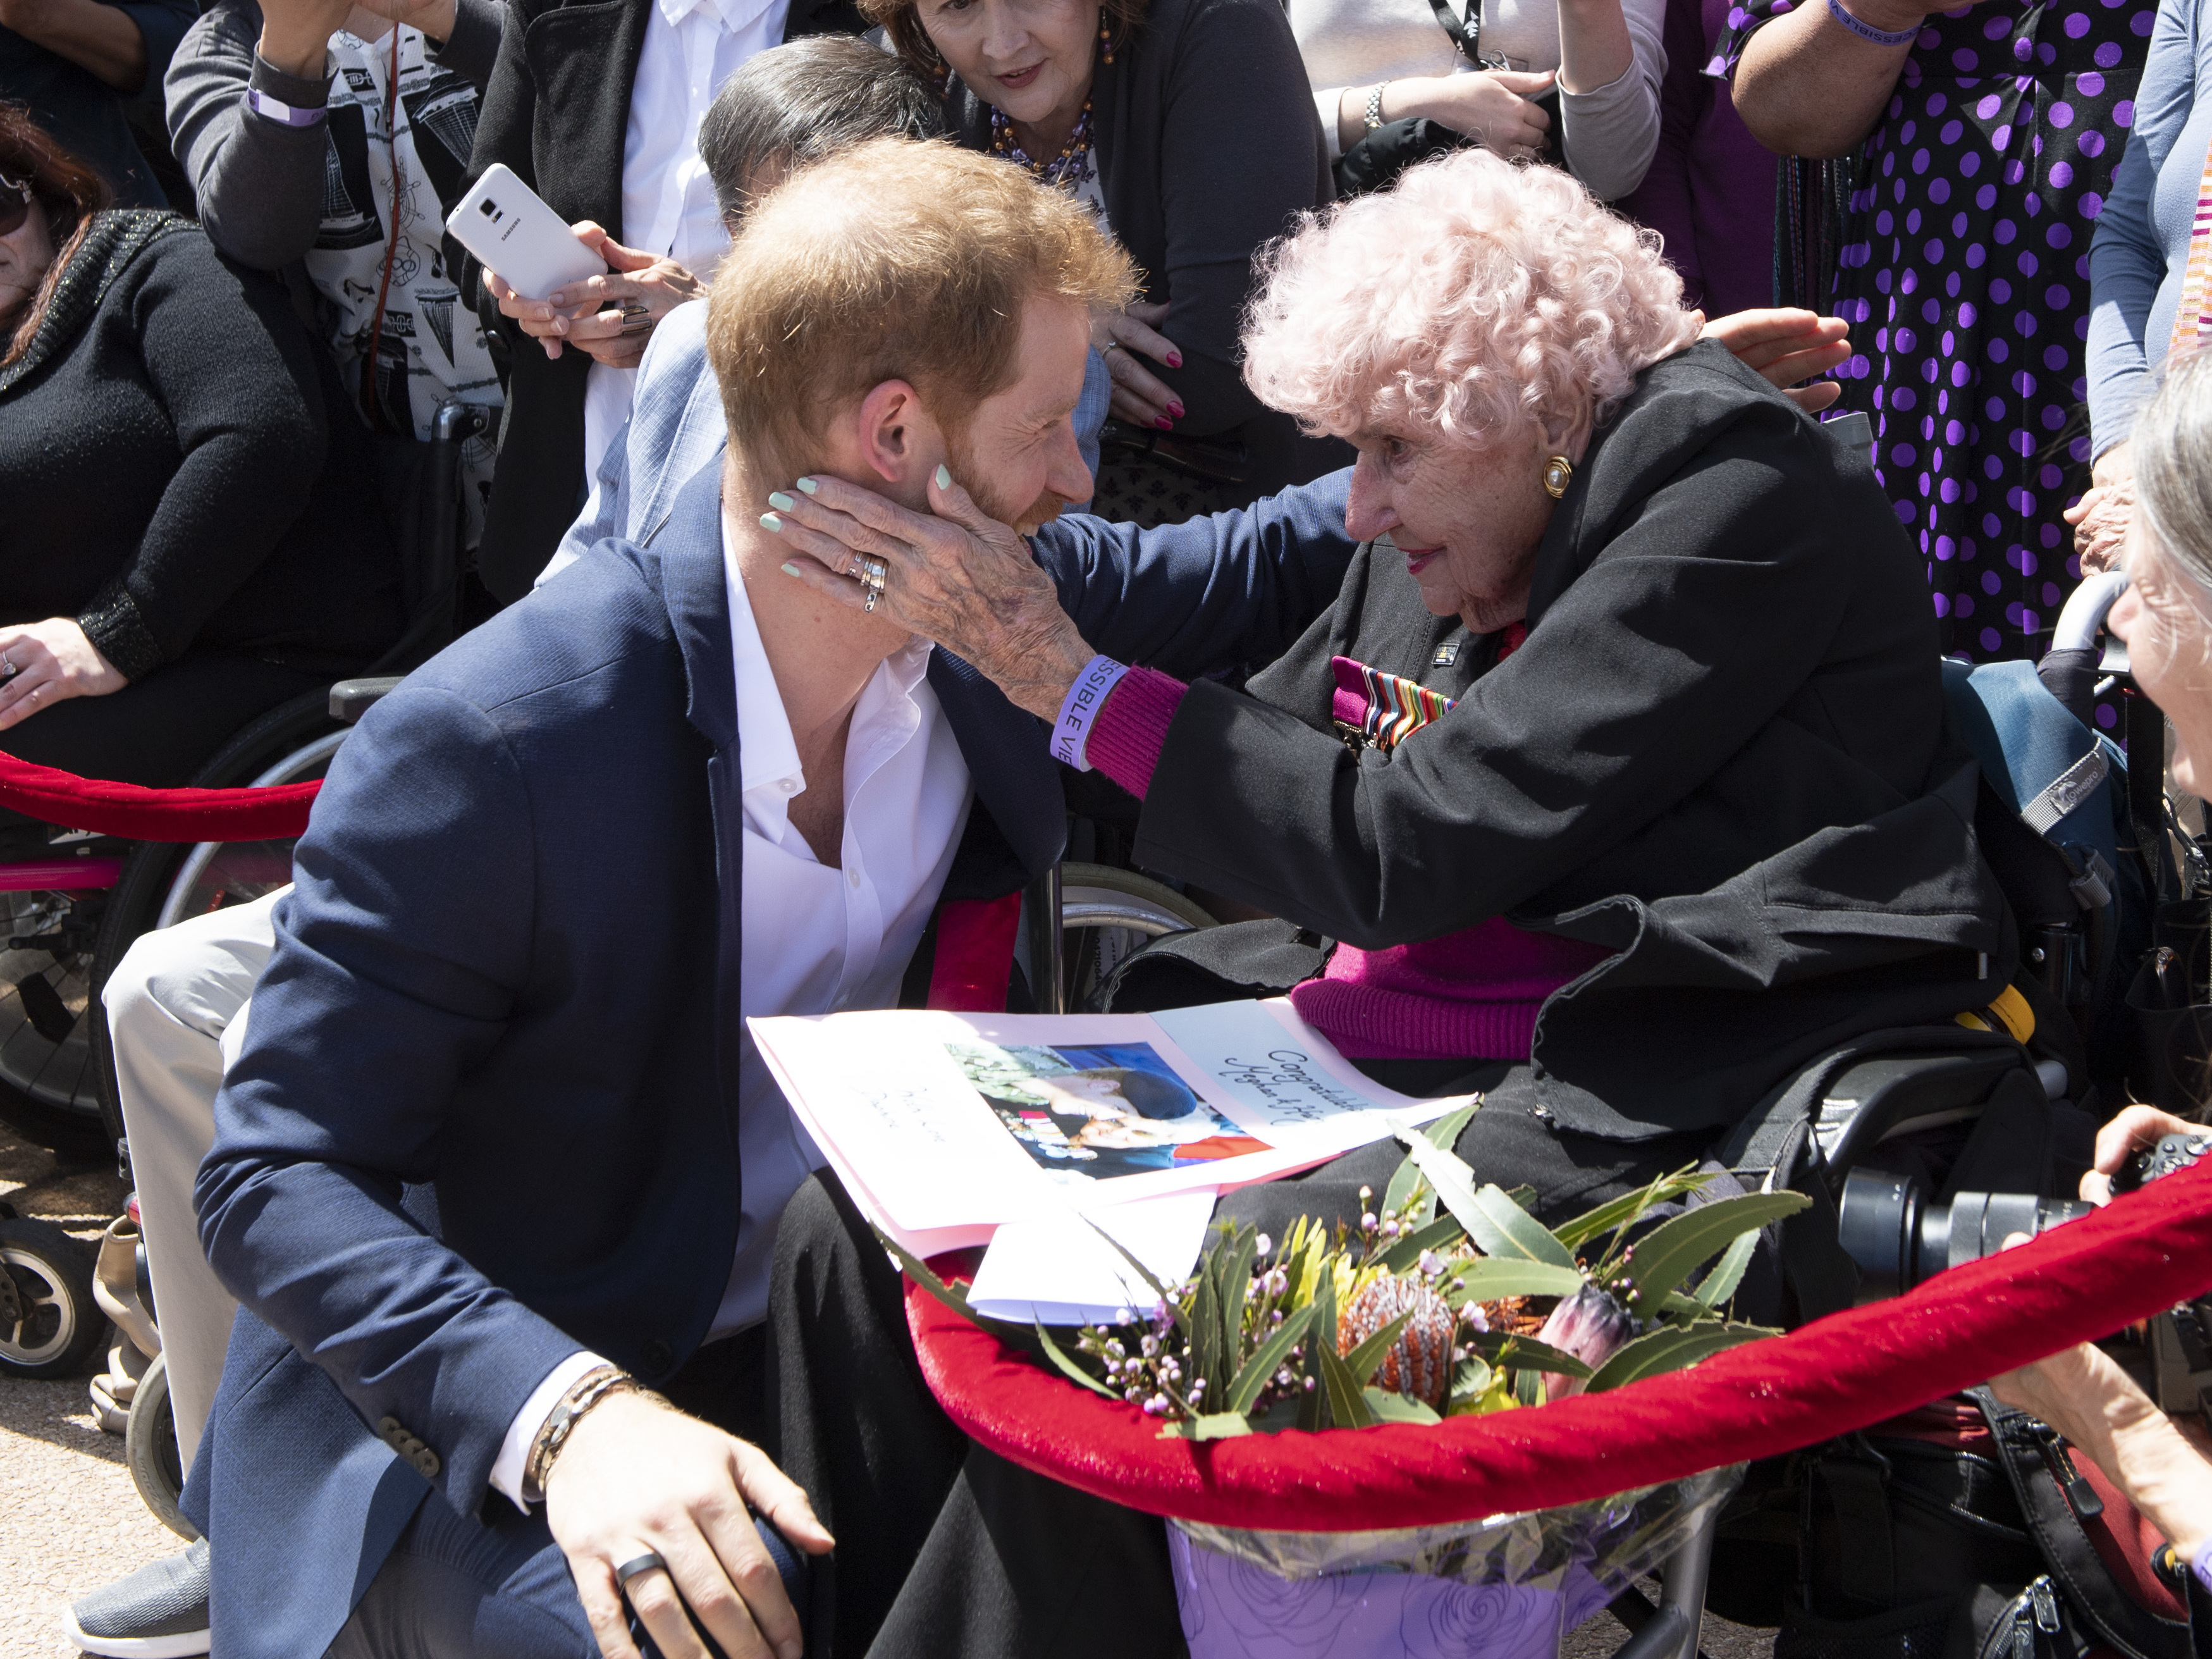 UK's Prince Harry and Meghan launch their own Instagram account